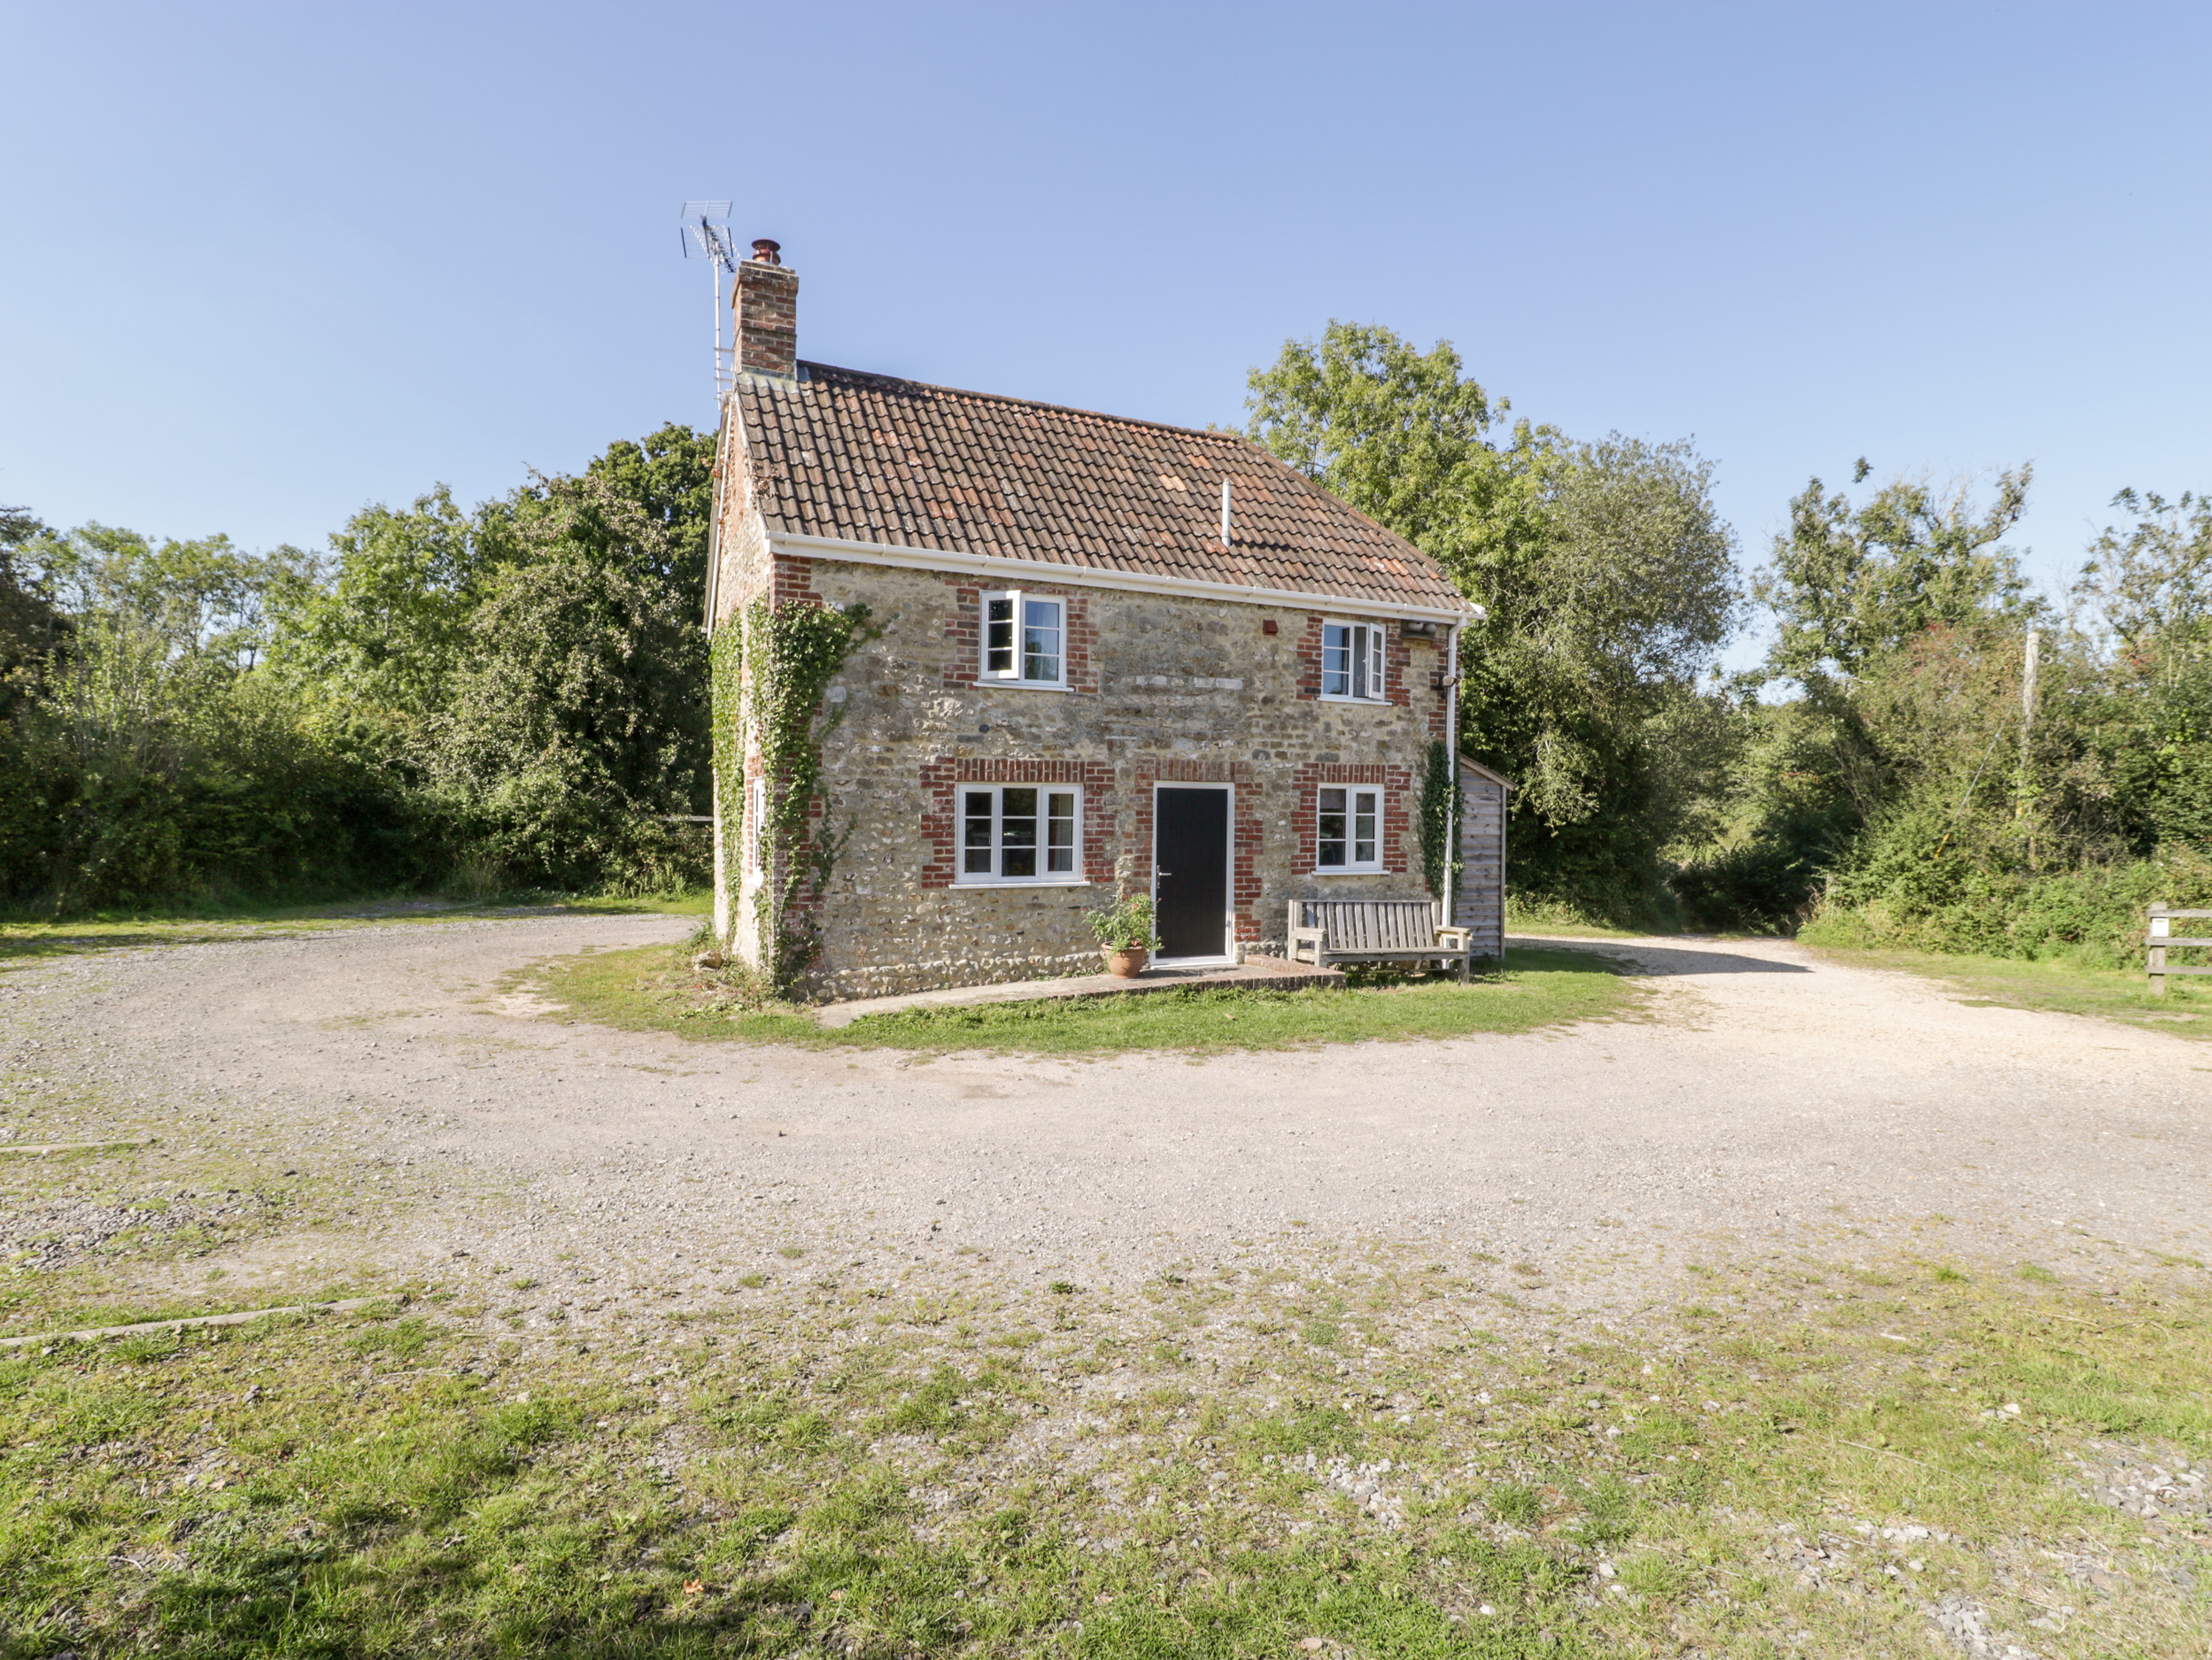 Pound Cottage, Dorset and Somerset